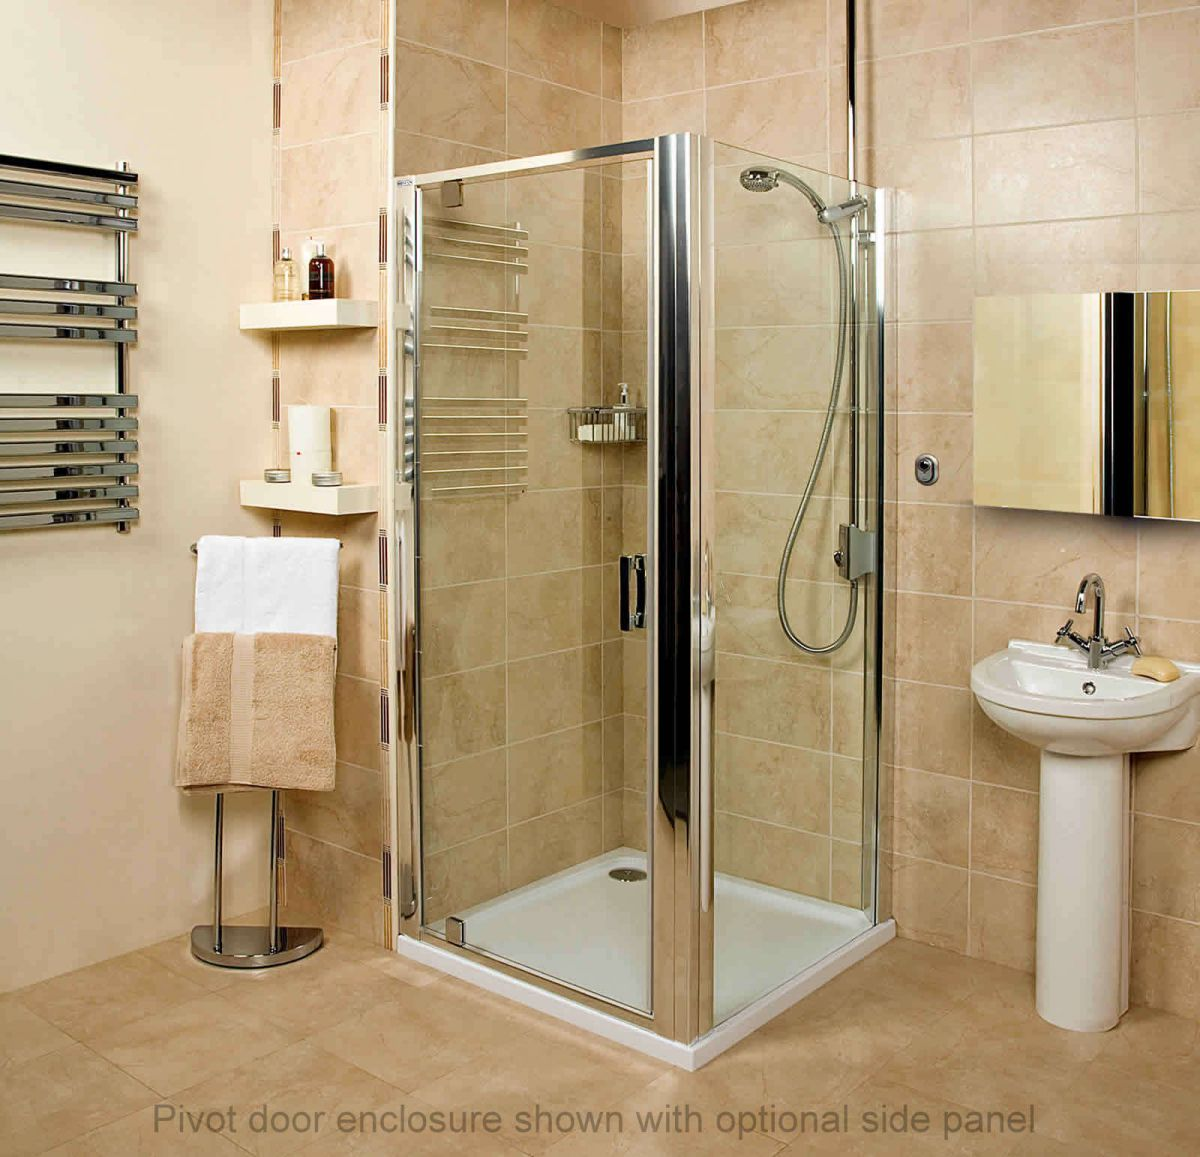 roman embrace pivot door shower enclosure uk bathrooms. Black Bedroom Furniture Sets. Home Design Ideas